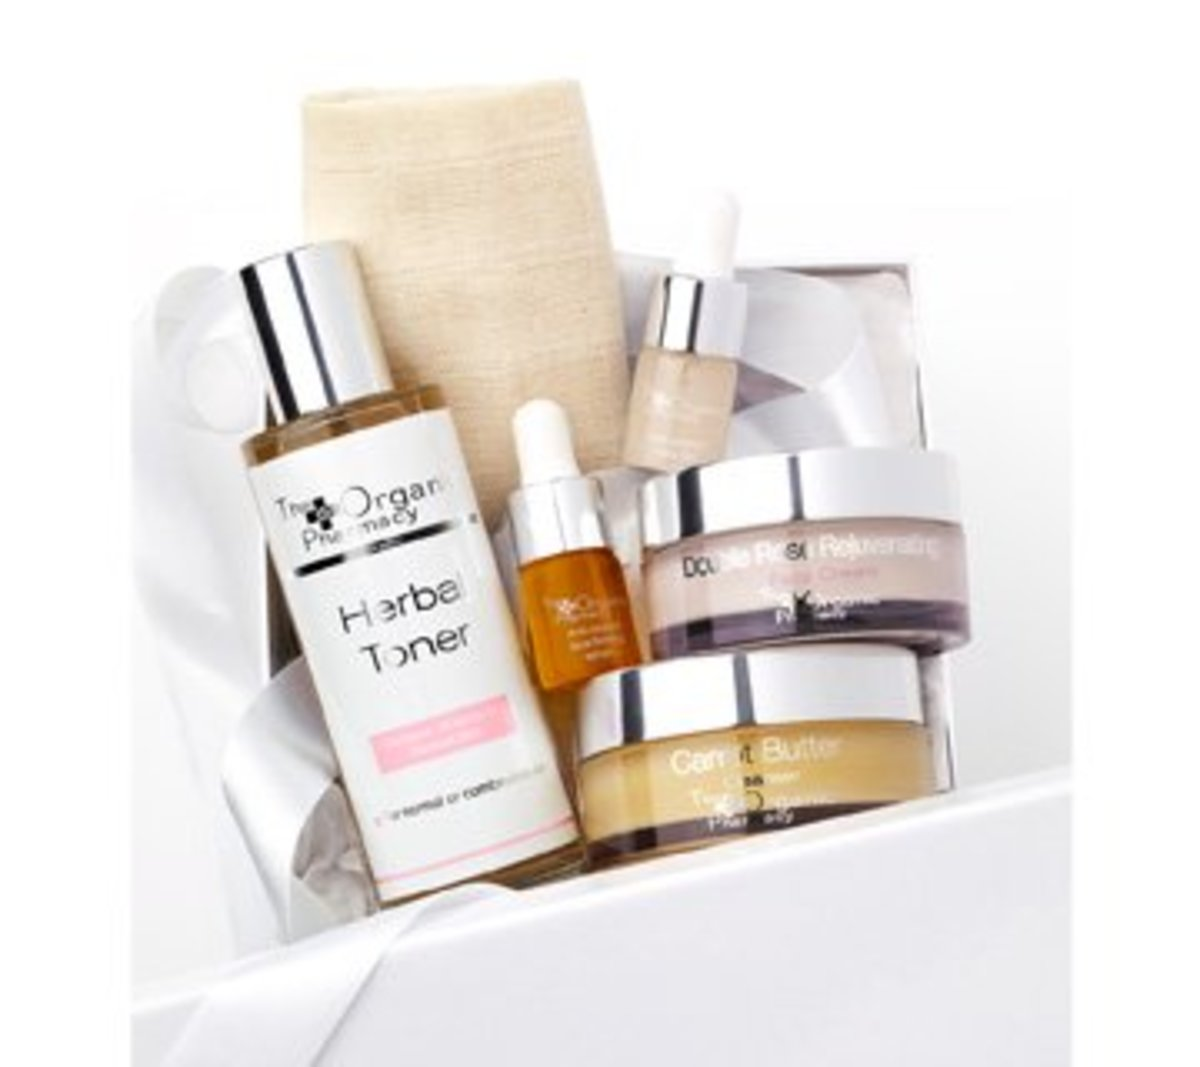 Products from The Organic Pharmacy